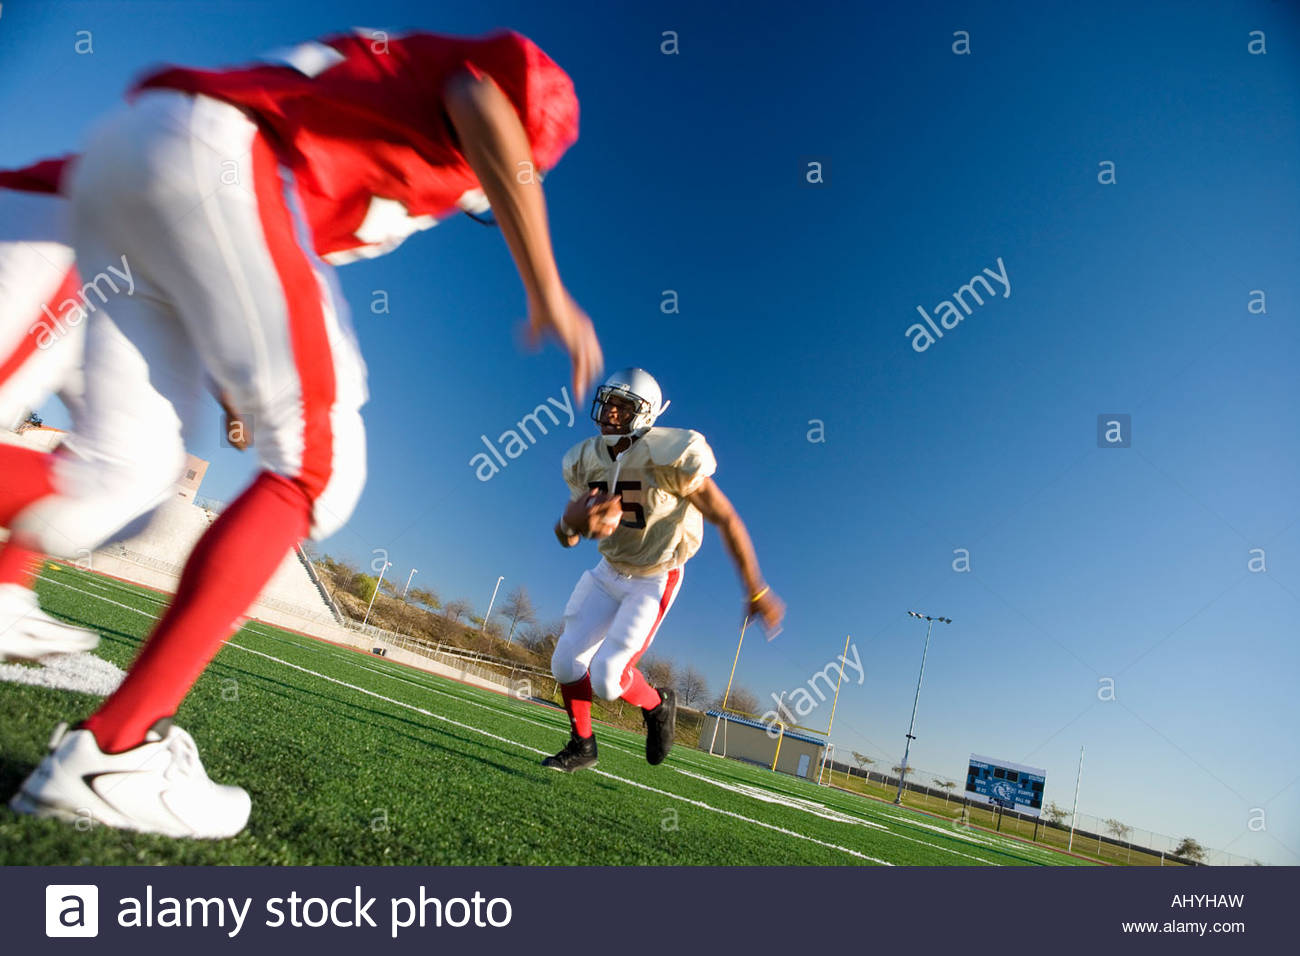 American football player running with ball at opposing team during competitive game surface level, tilt - Stock Image